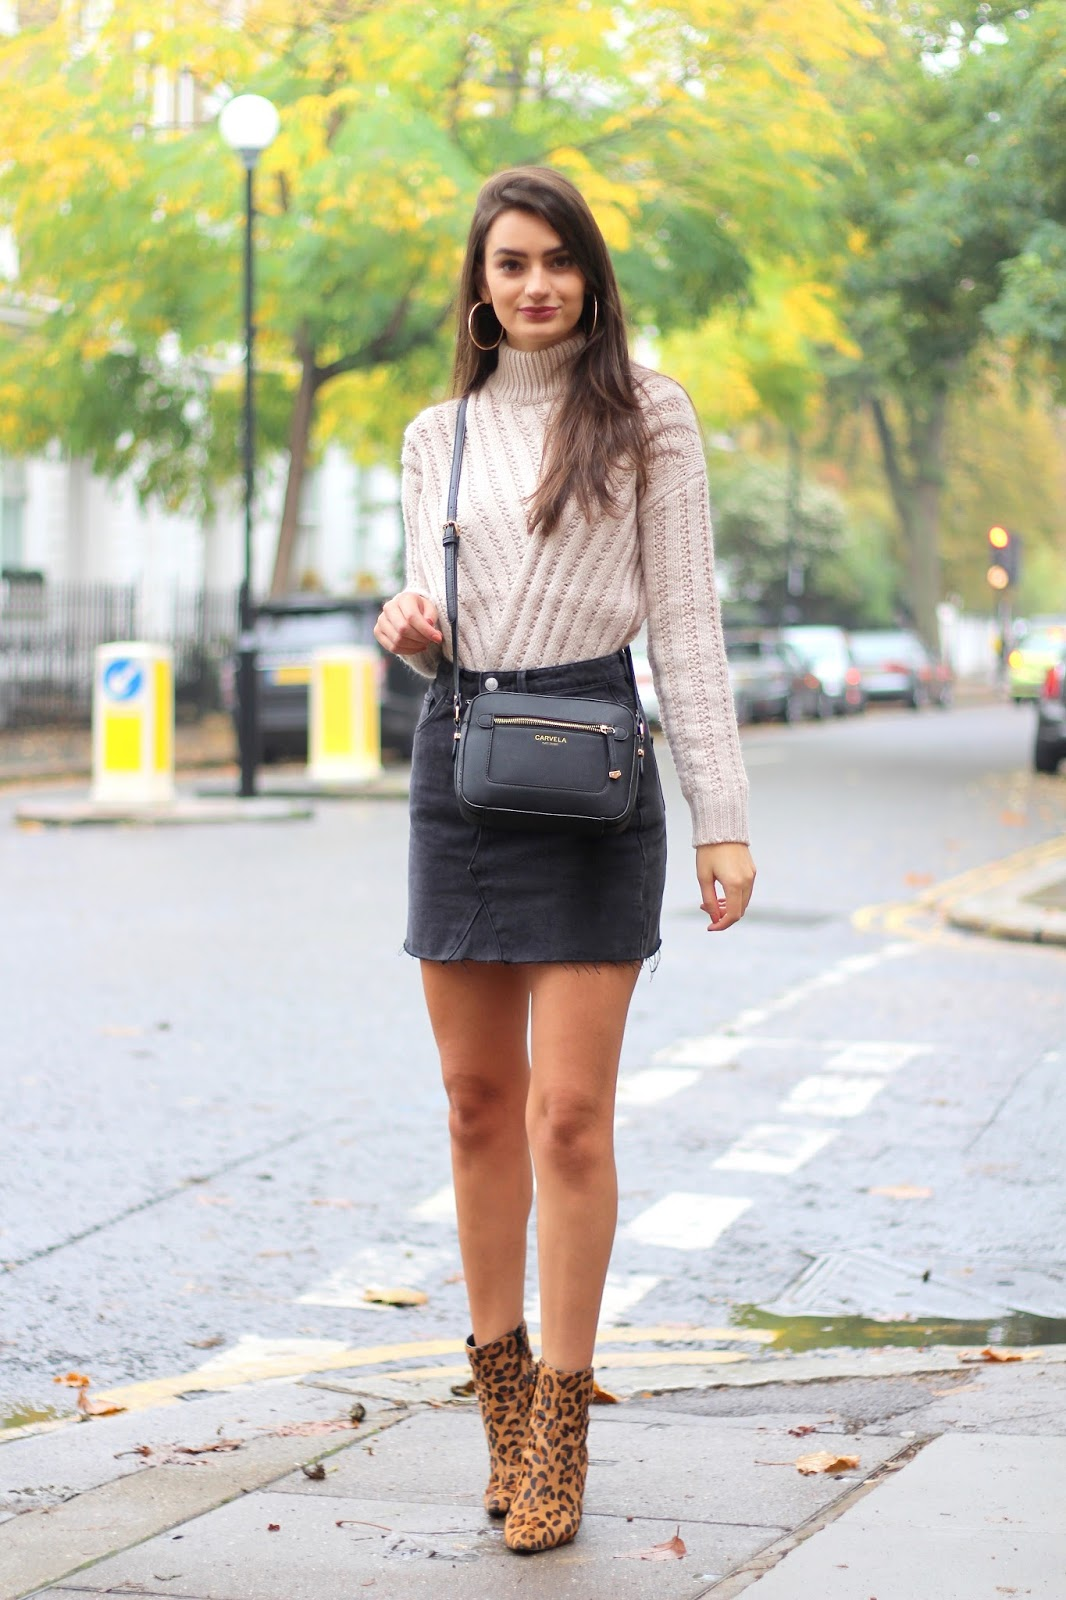 ditching transitional dressing peexo london style blogger